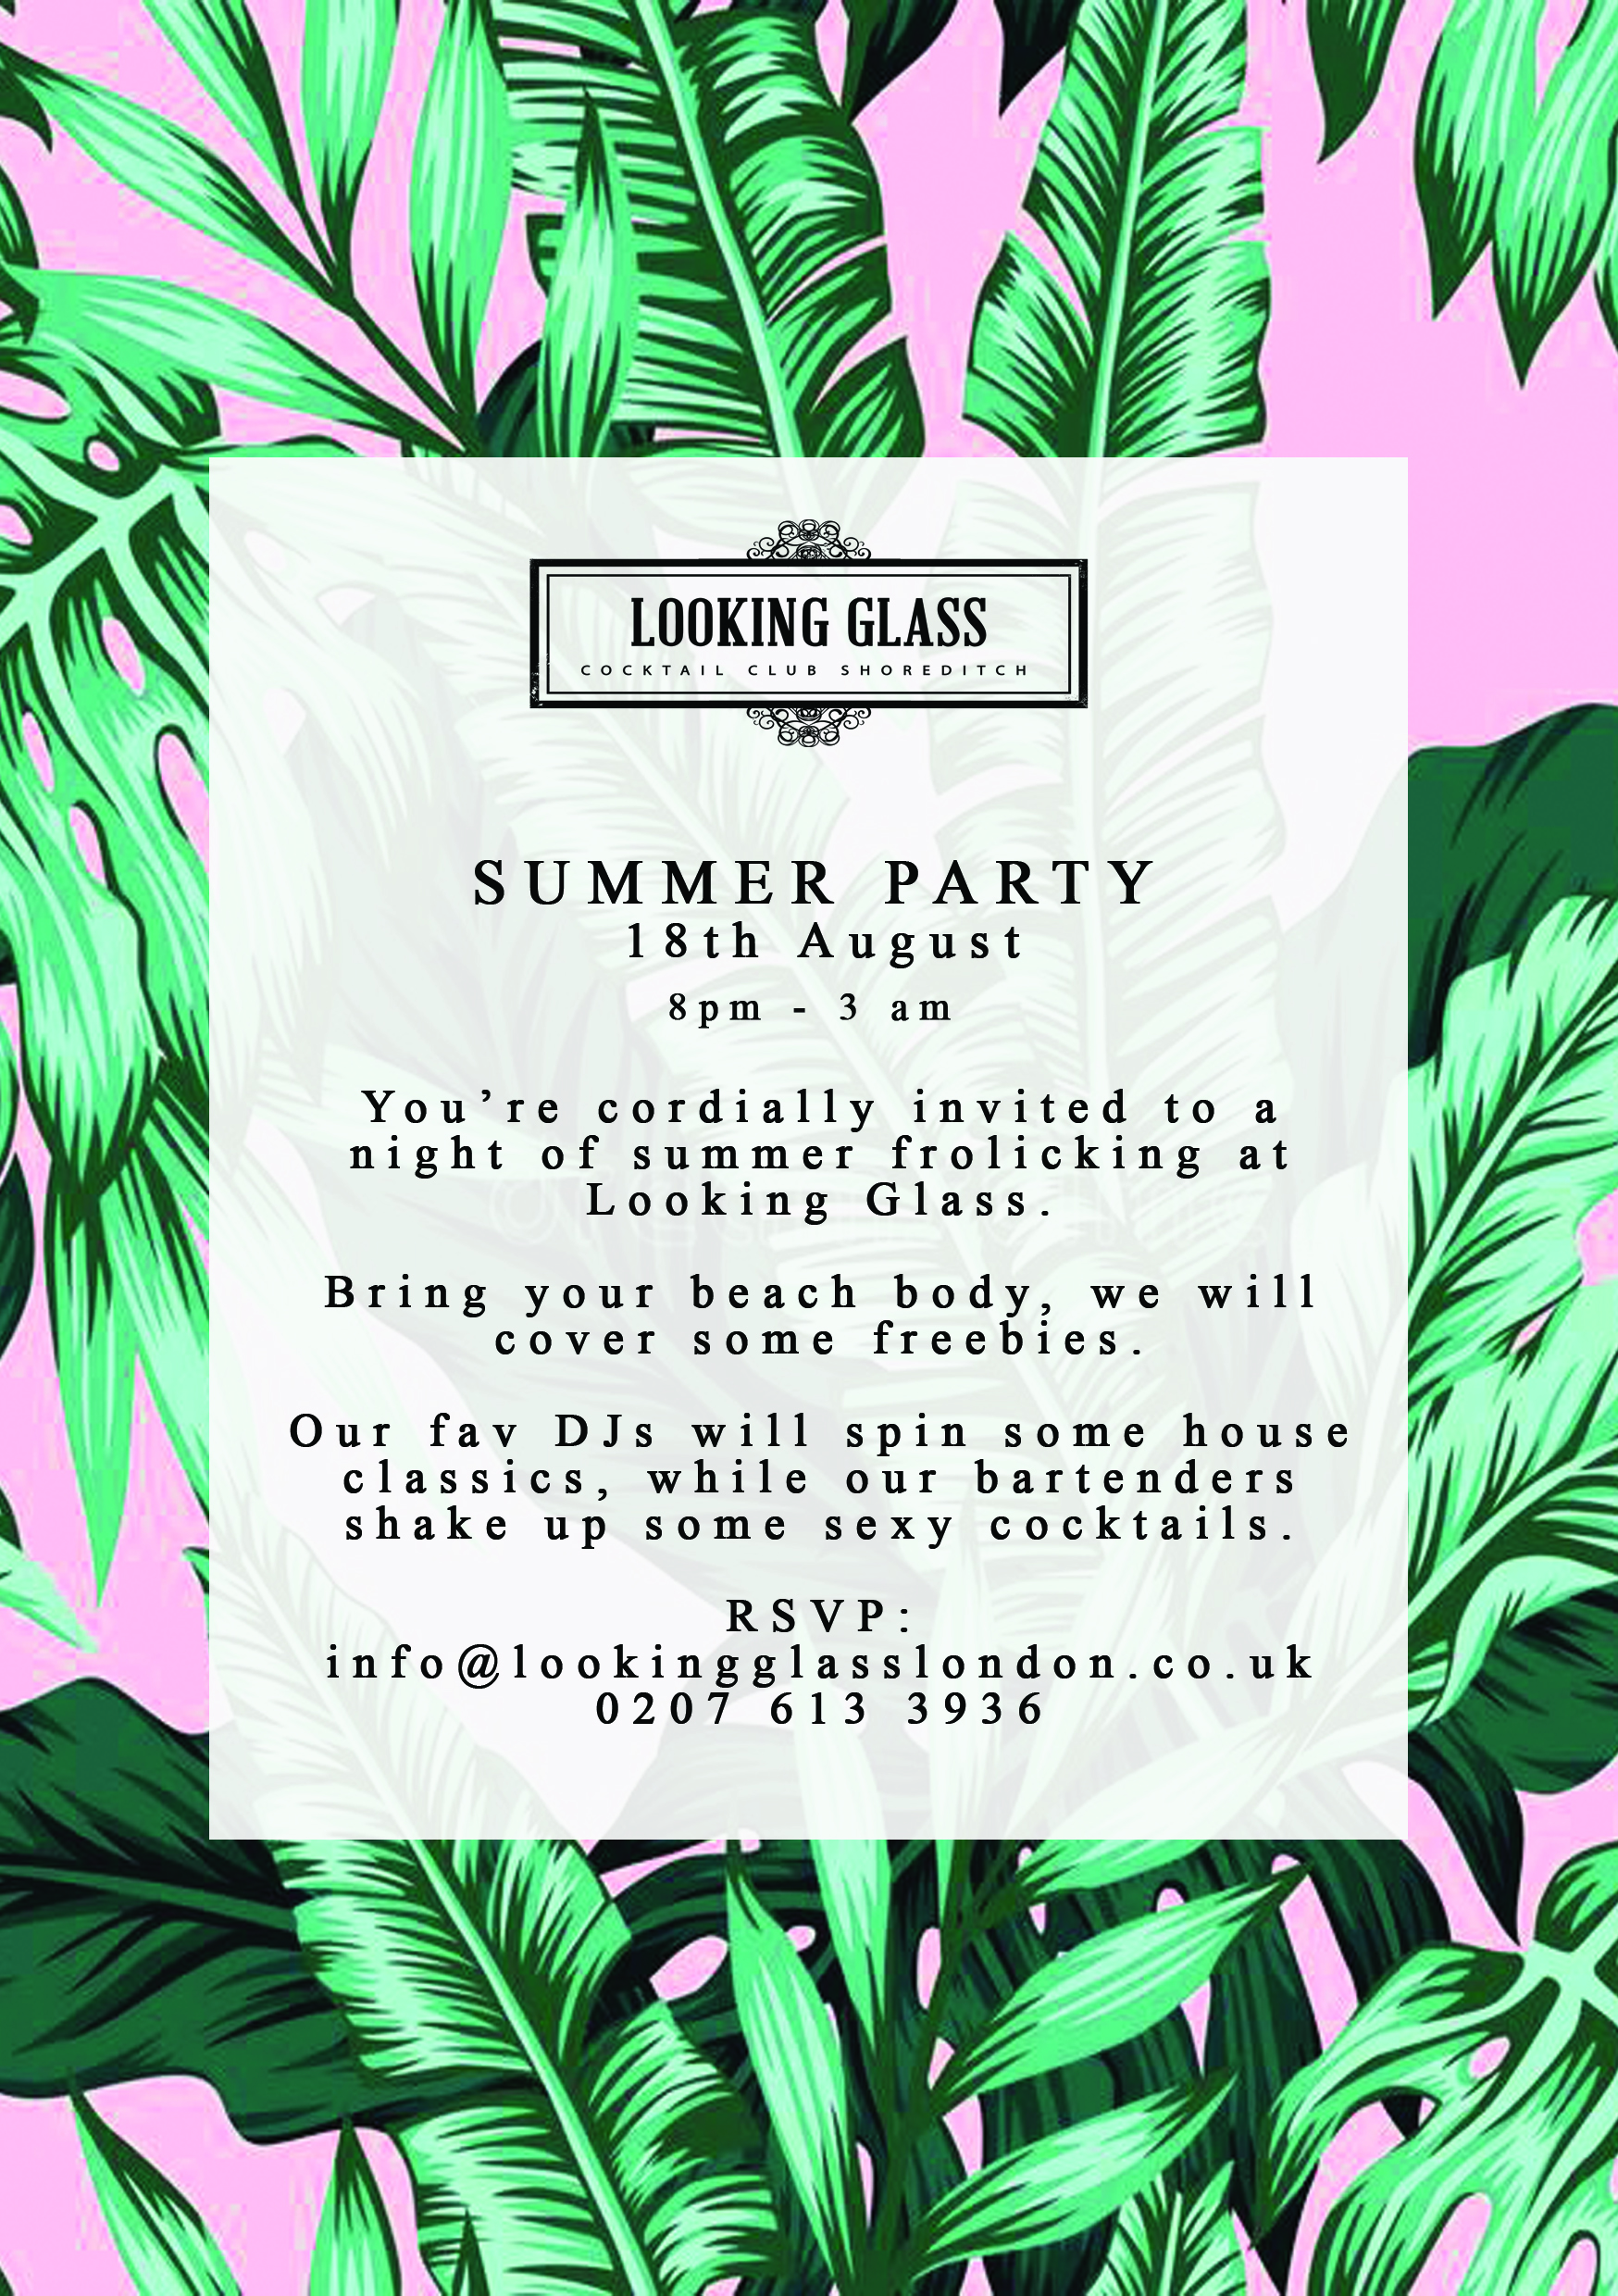 LG Summer Party Invitation.jpg